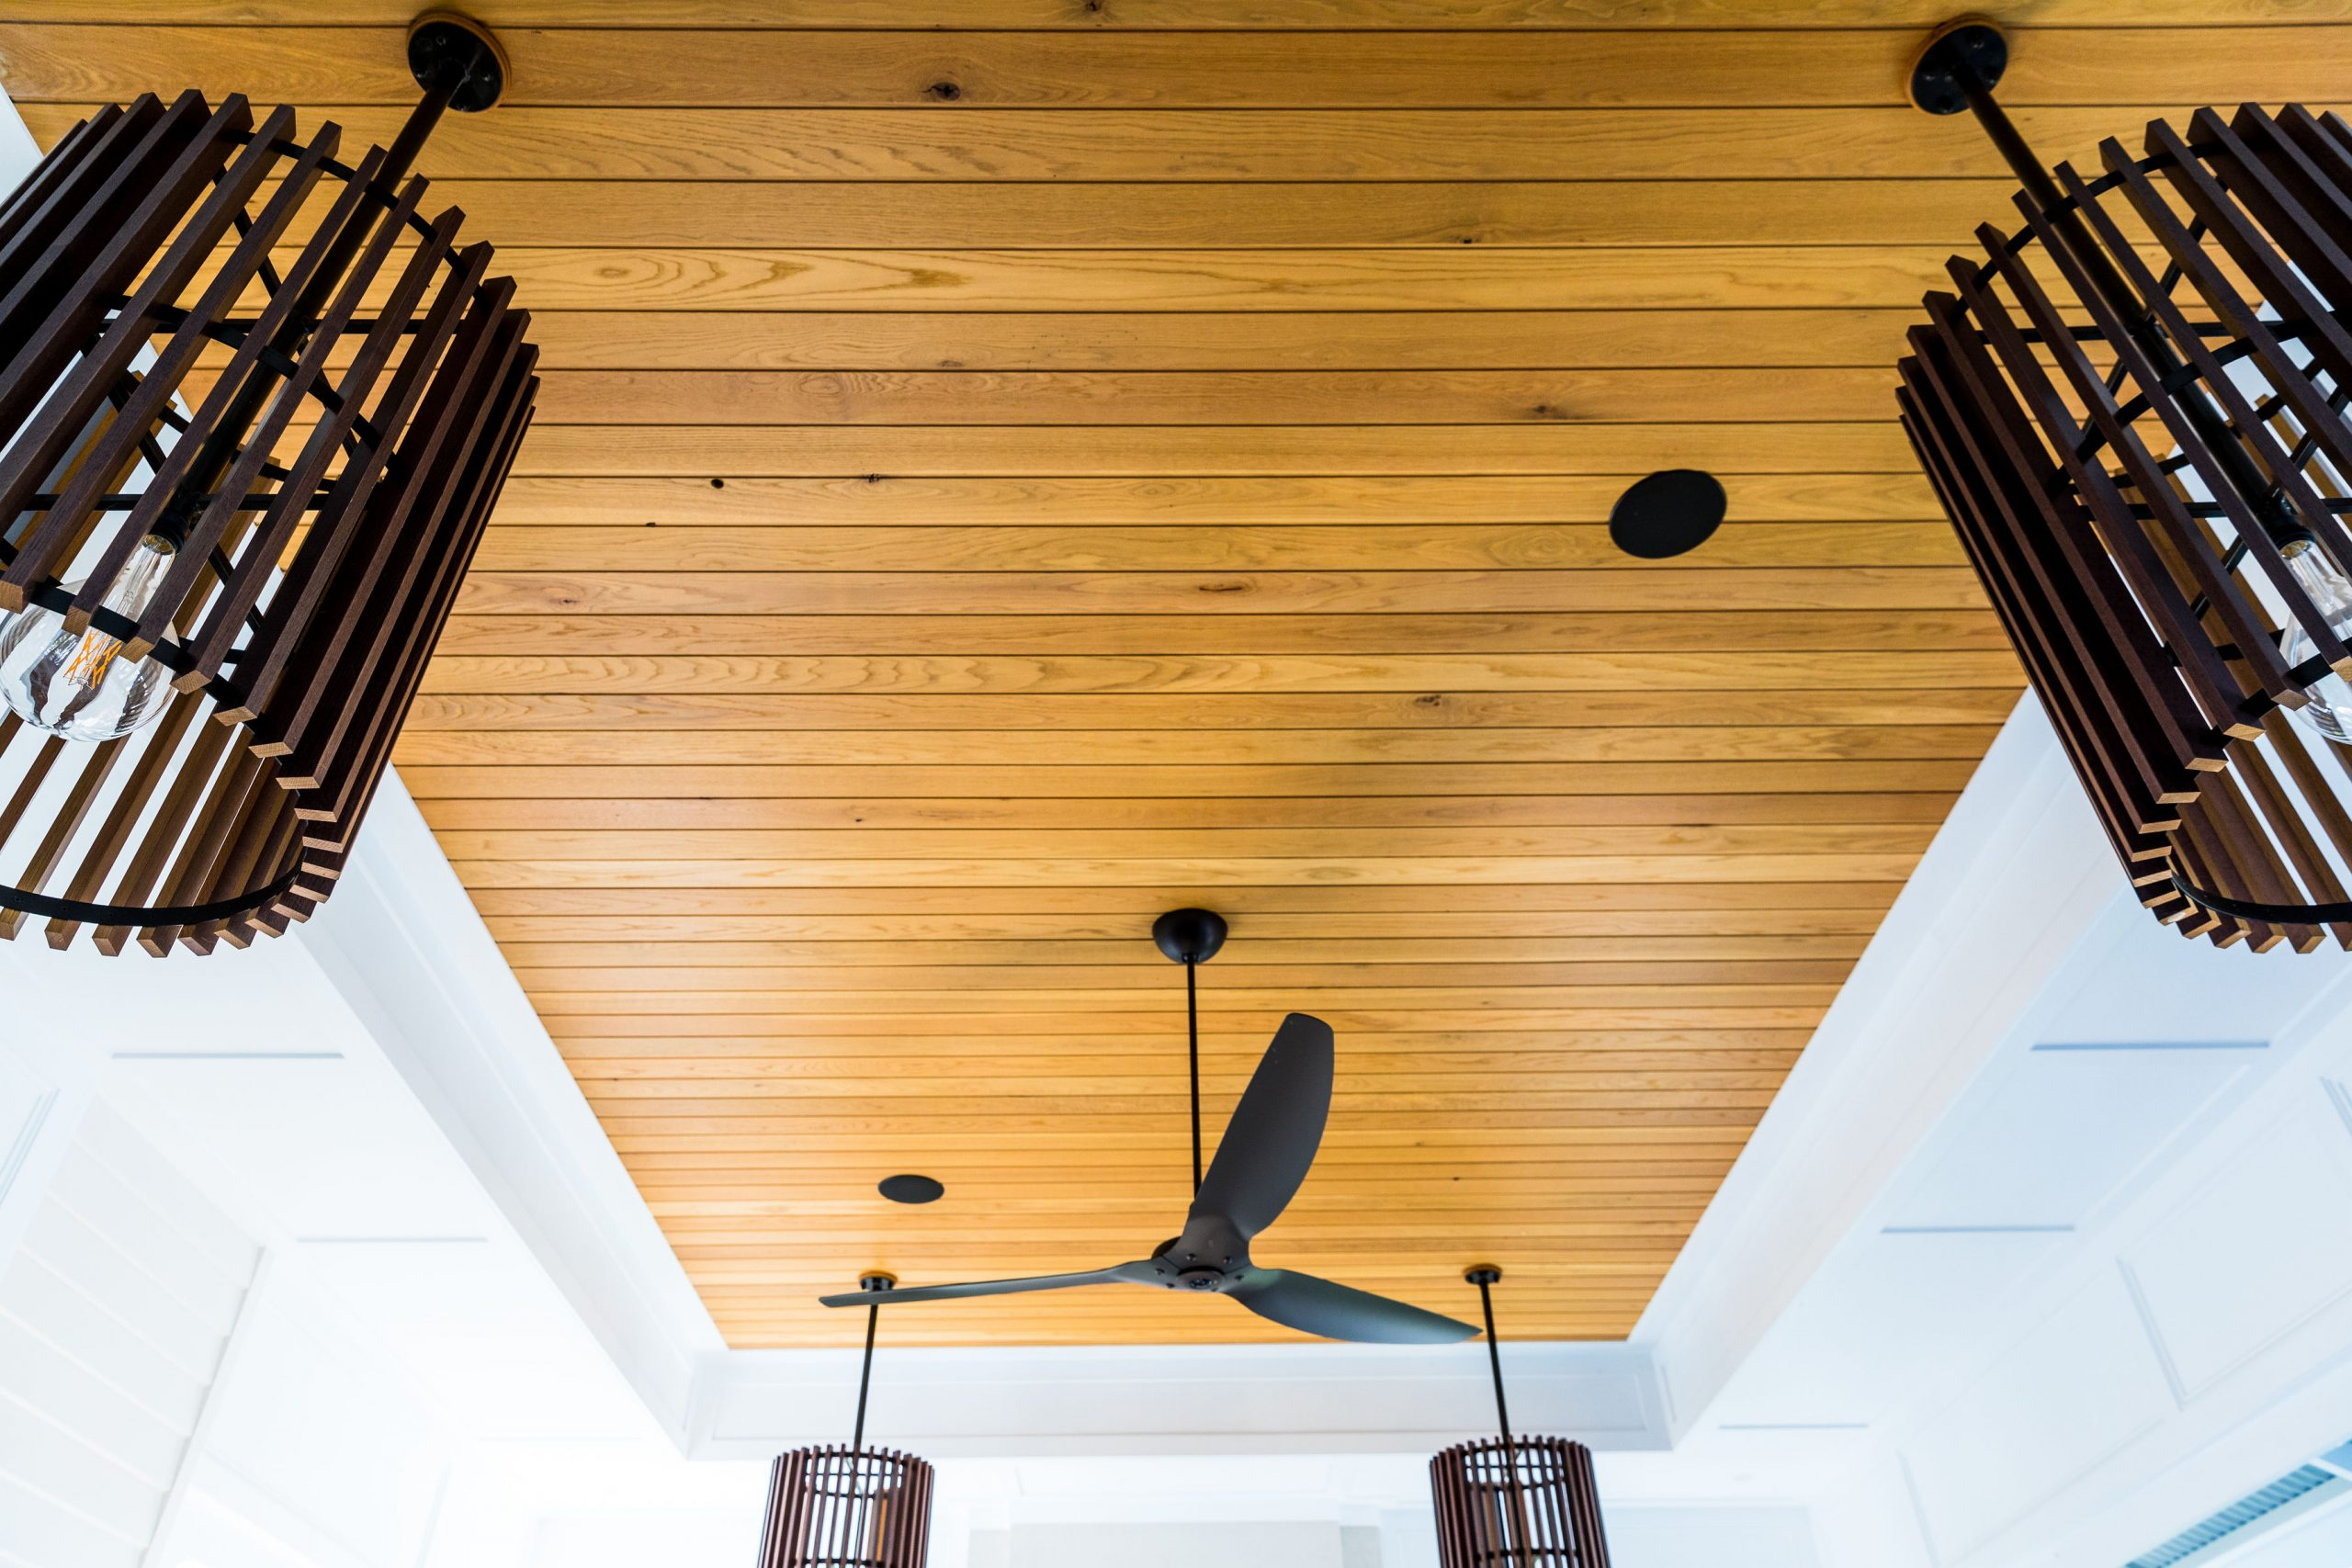 A wooden cieling